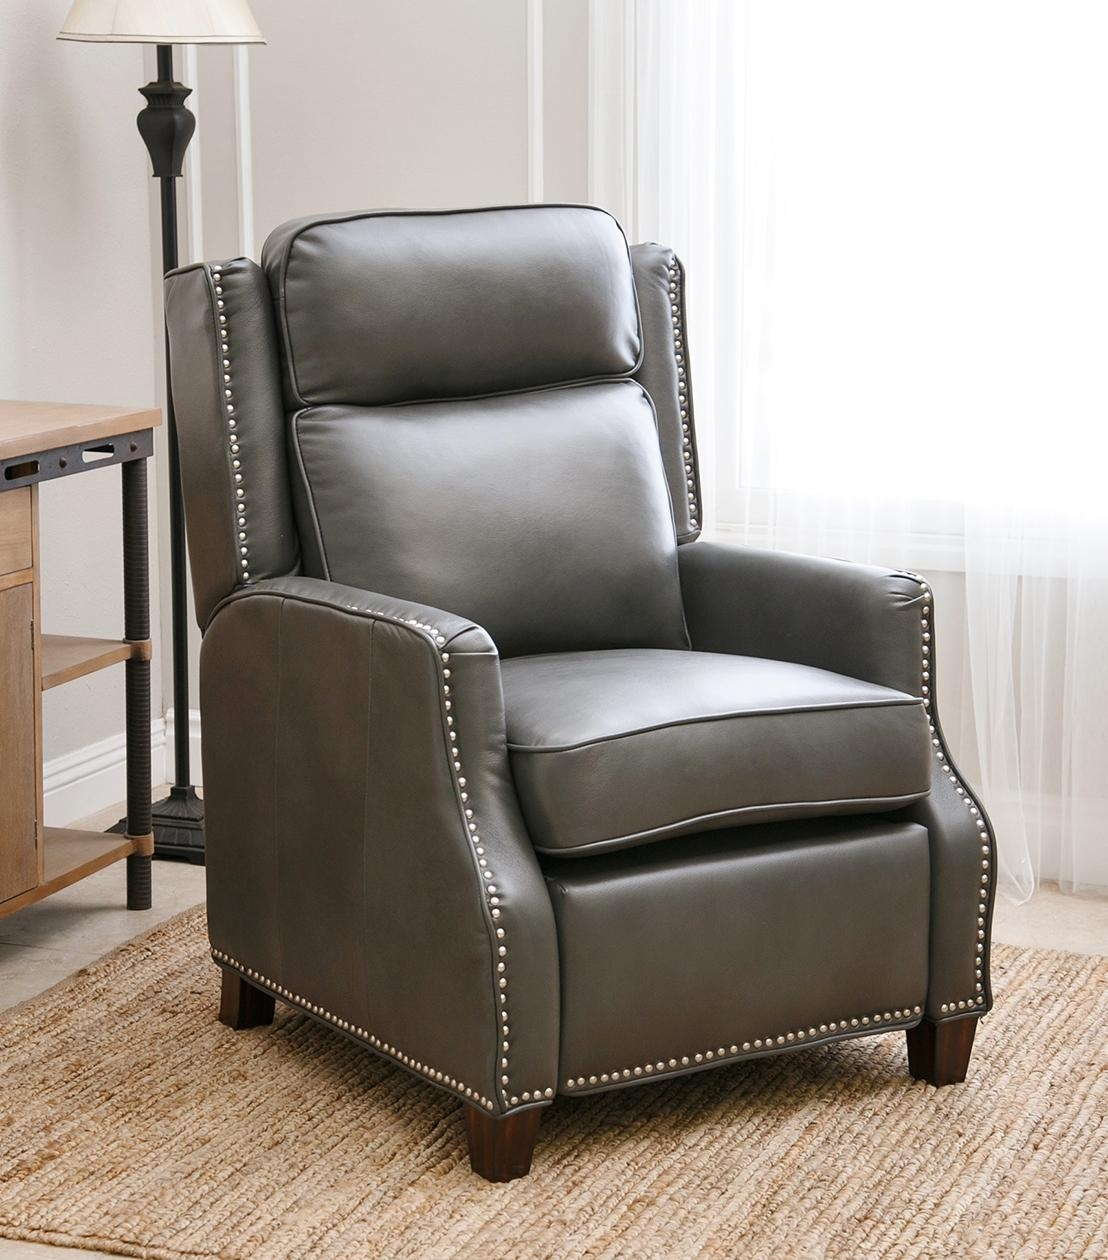 Recliners : Richfield Leather Recliner Within Abbyson Recliners (Image 14 of 20)